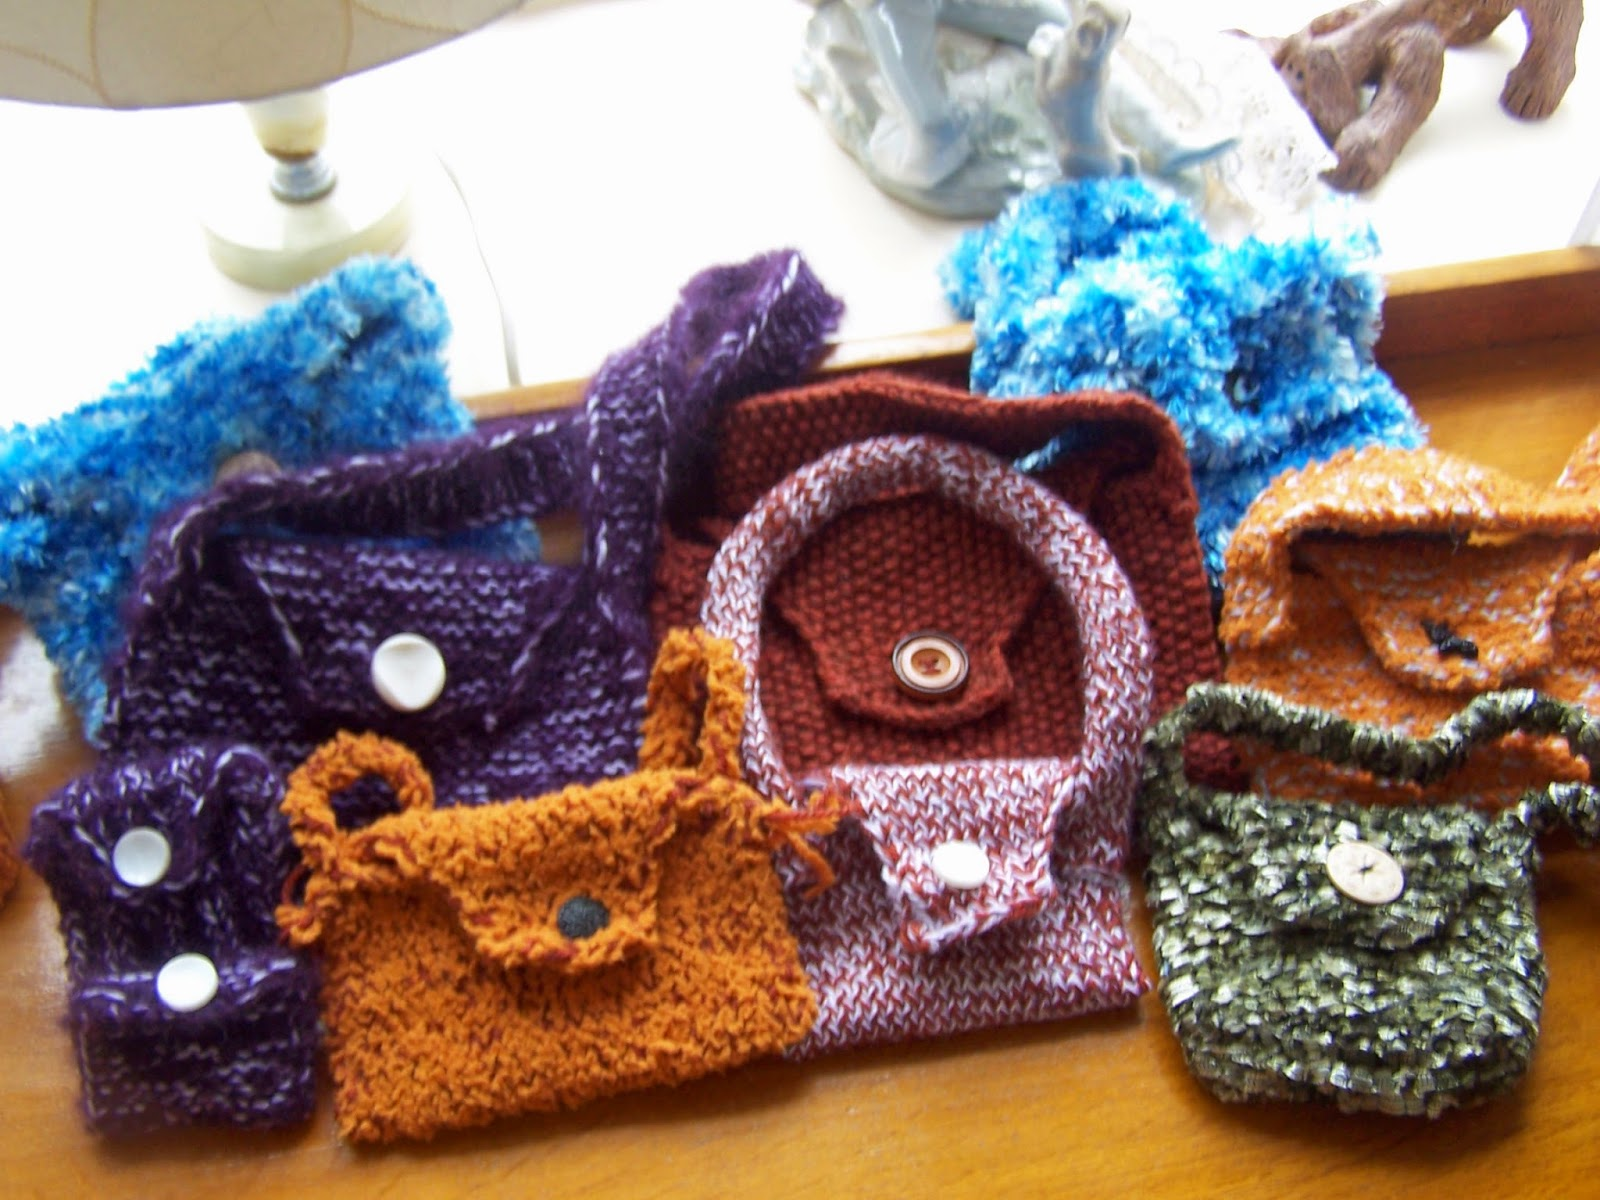 knitting: bags and purses in garter stitch